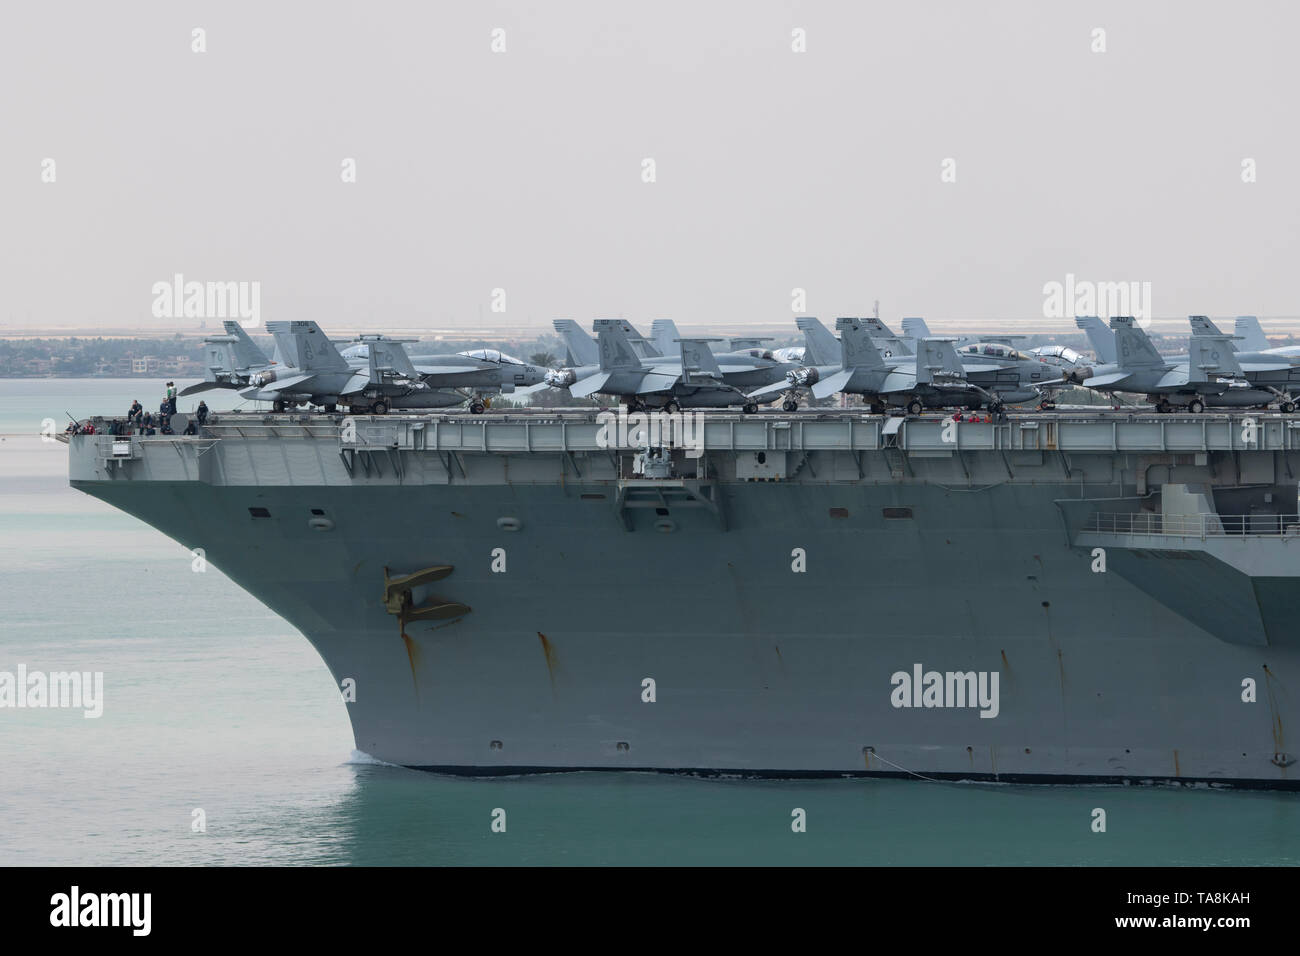 Egypt, Suez Canal. Abraham Lincoln Strike Group (ABECSG) transiting Suez Canal, May 9, 2019. Nimitz-class aircraft carrier USS Abraham Lincoln. - Stock Image